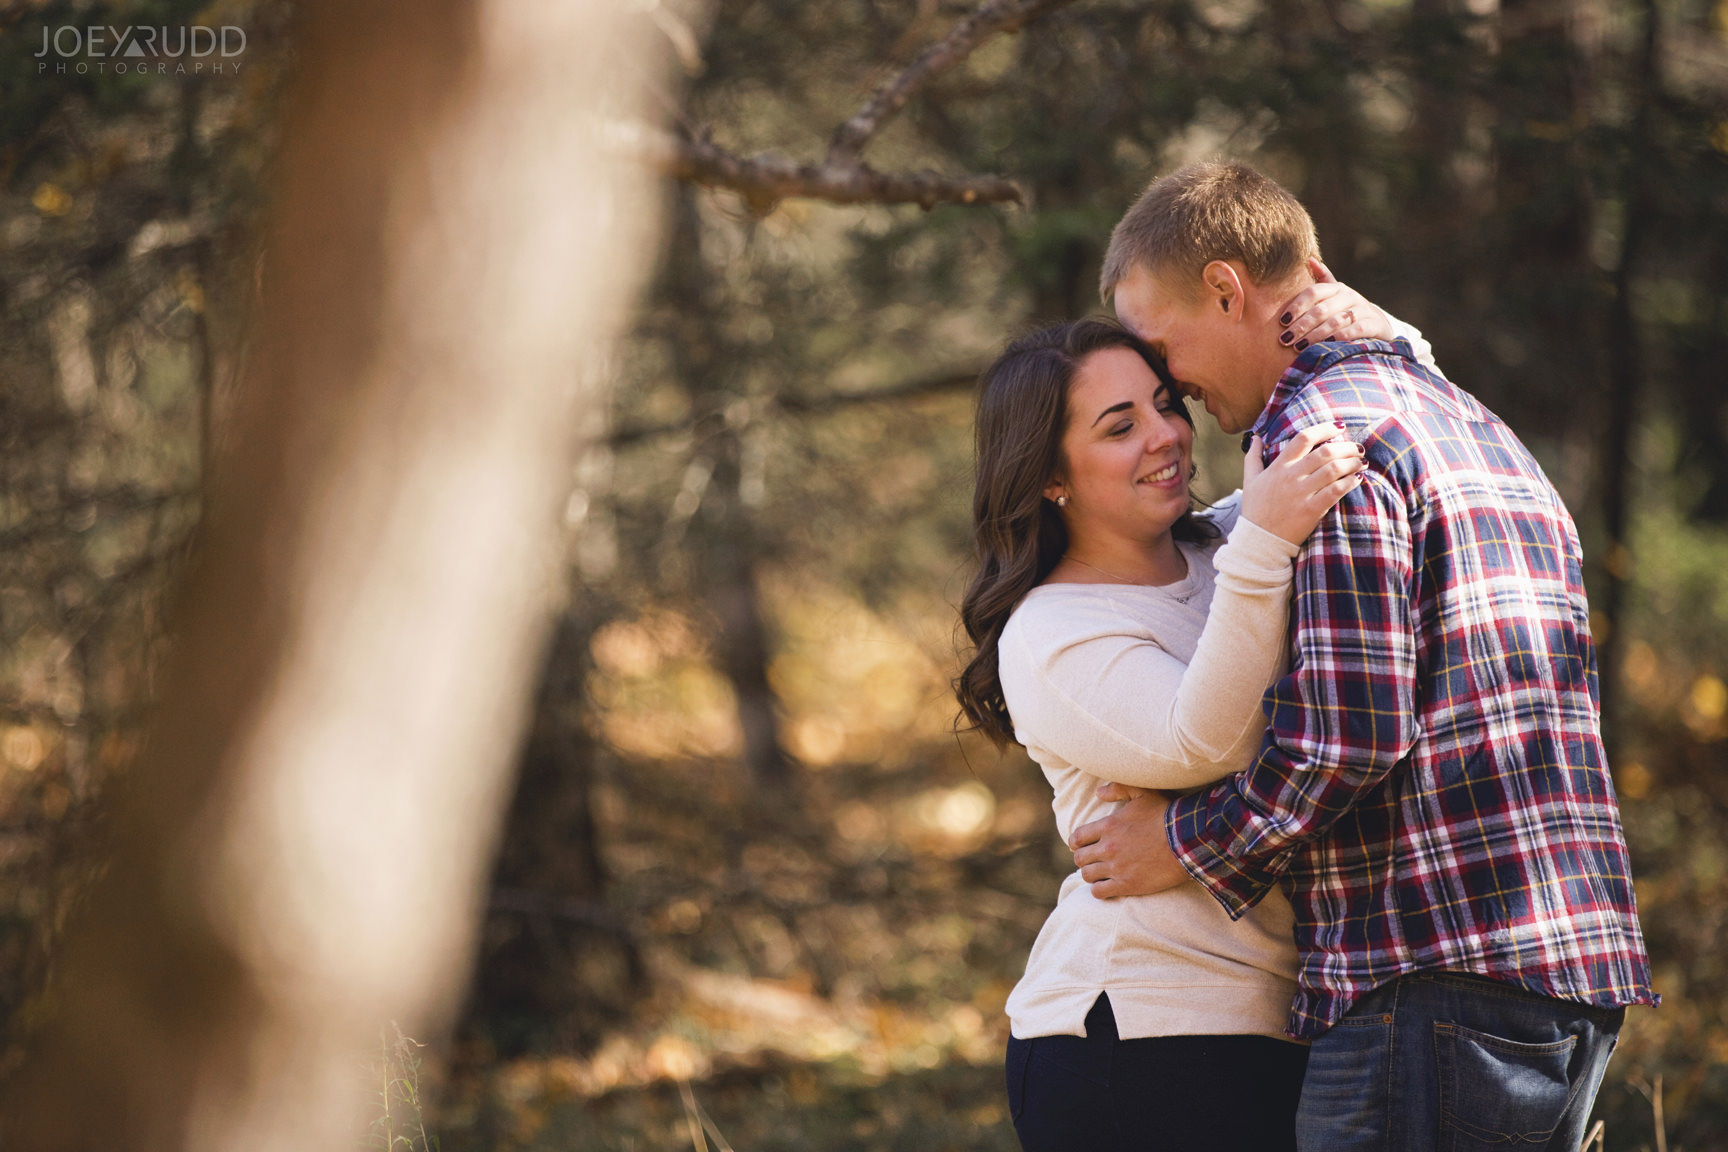 Carleton Place Engagement by Joey Rudd Photography Lovely